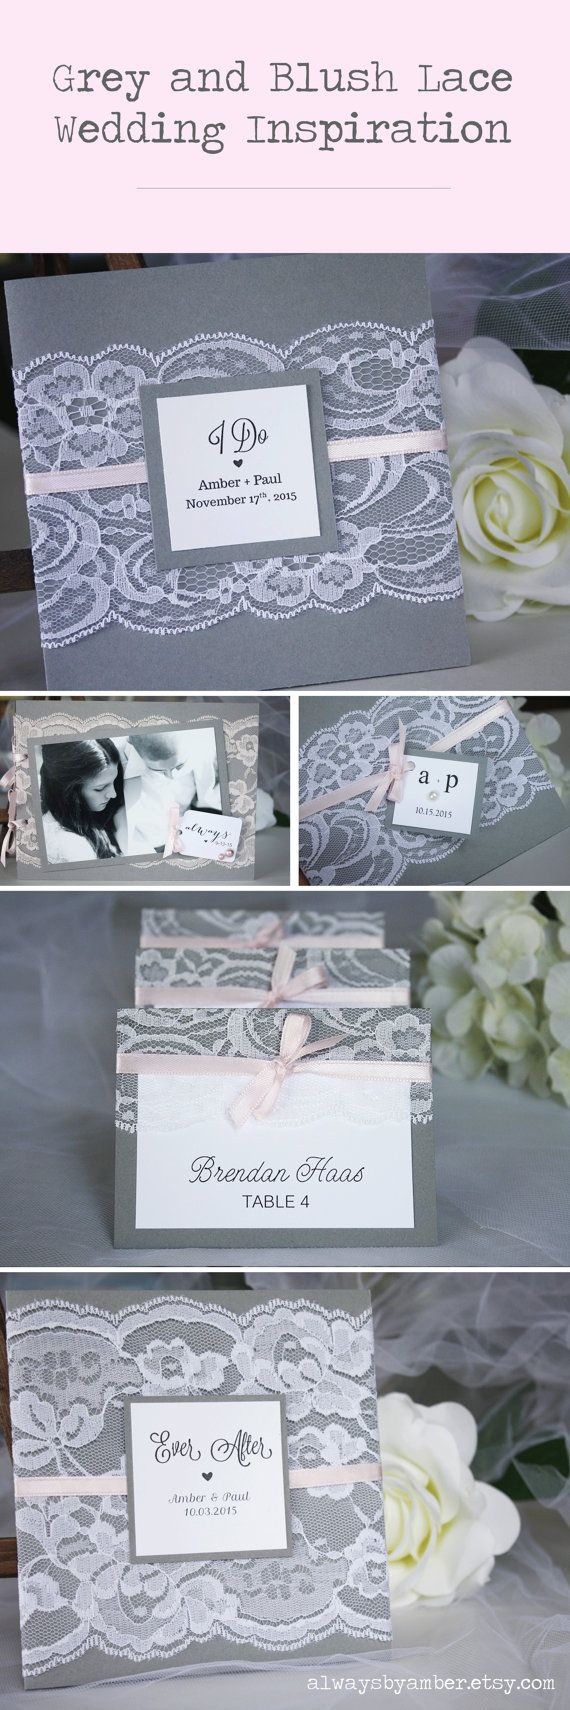 handmade wedding cards ireland%0A Grey and Blush Lace Wedding Invitations  Lace Wedding Invitations  Vintage u